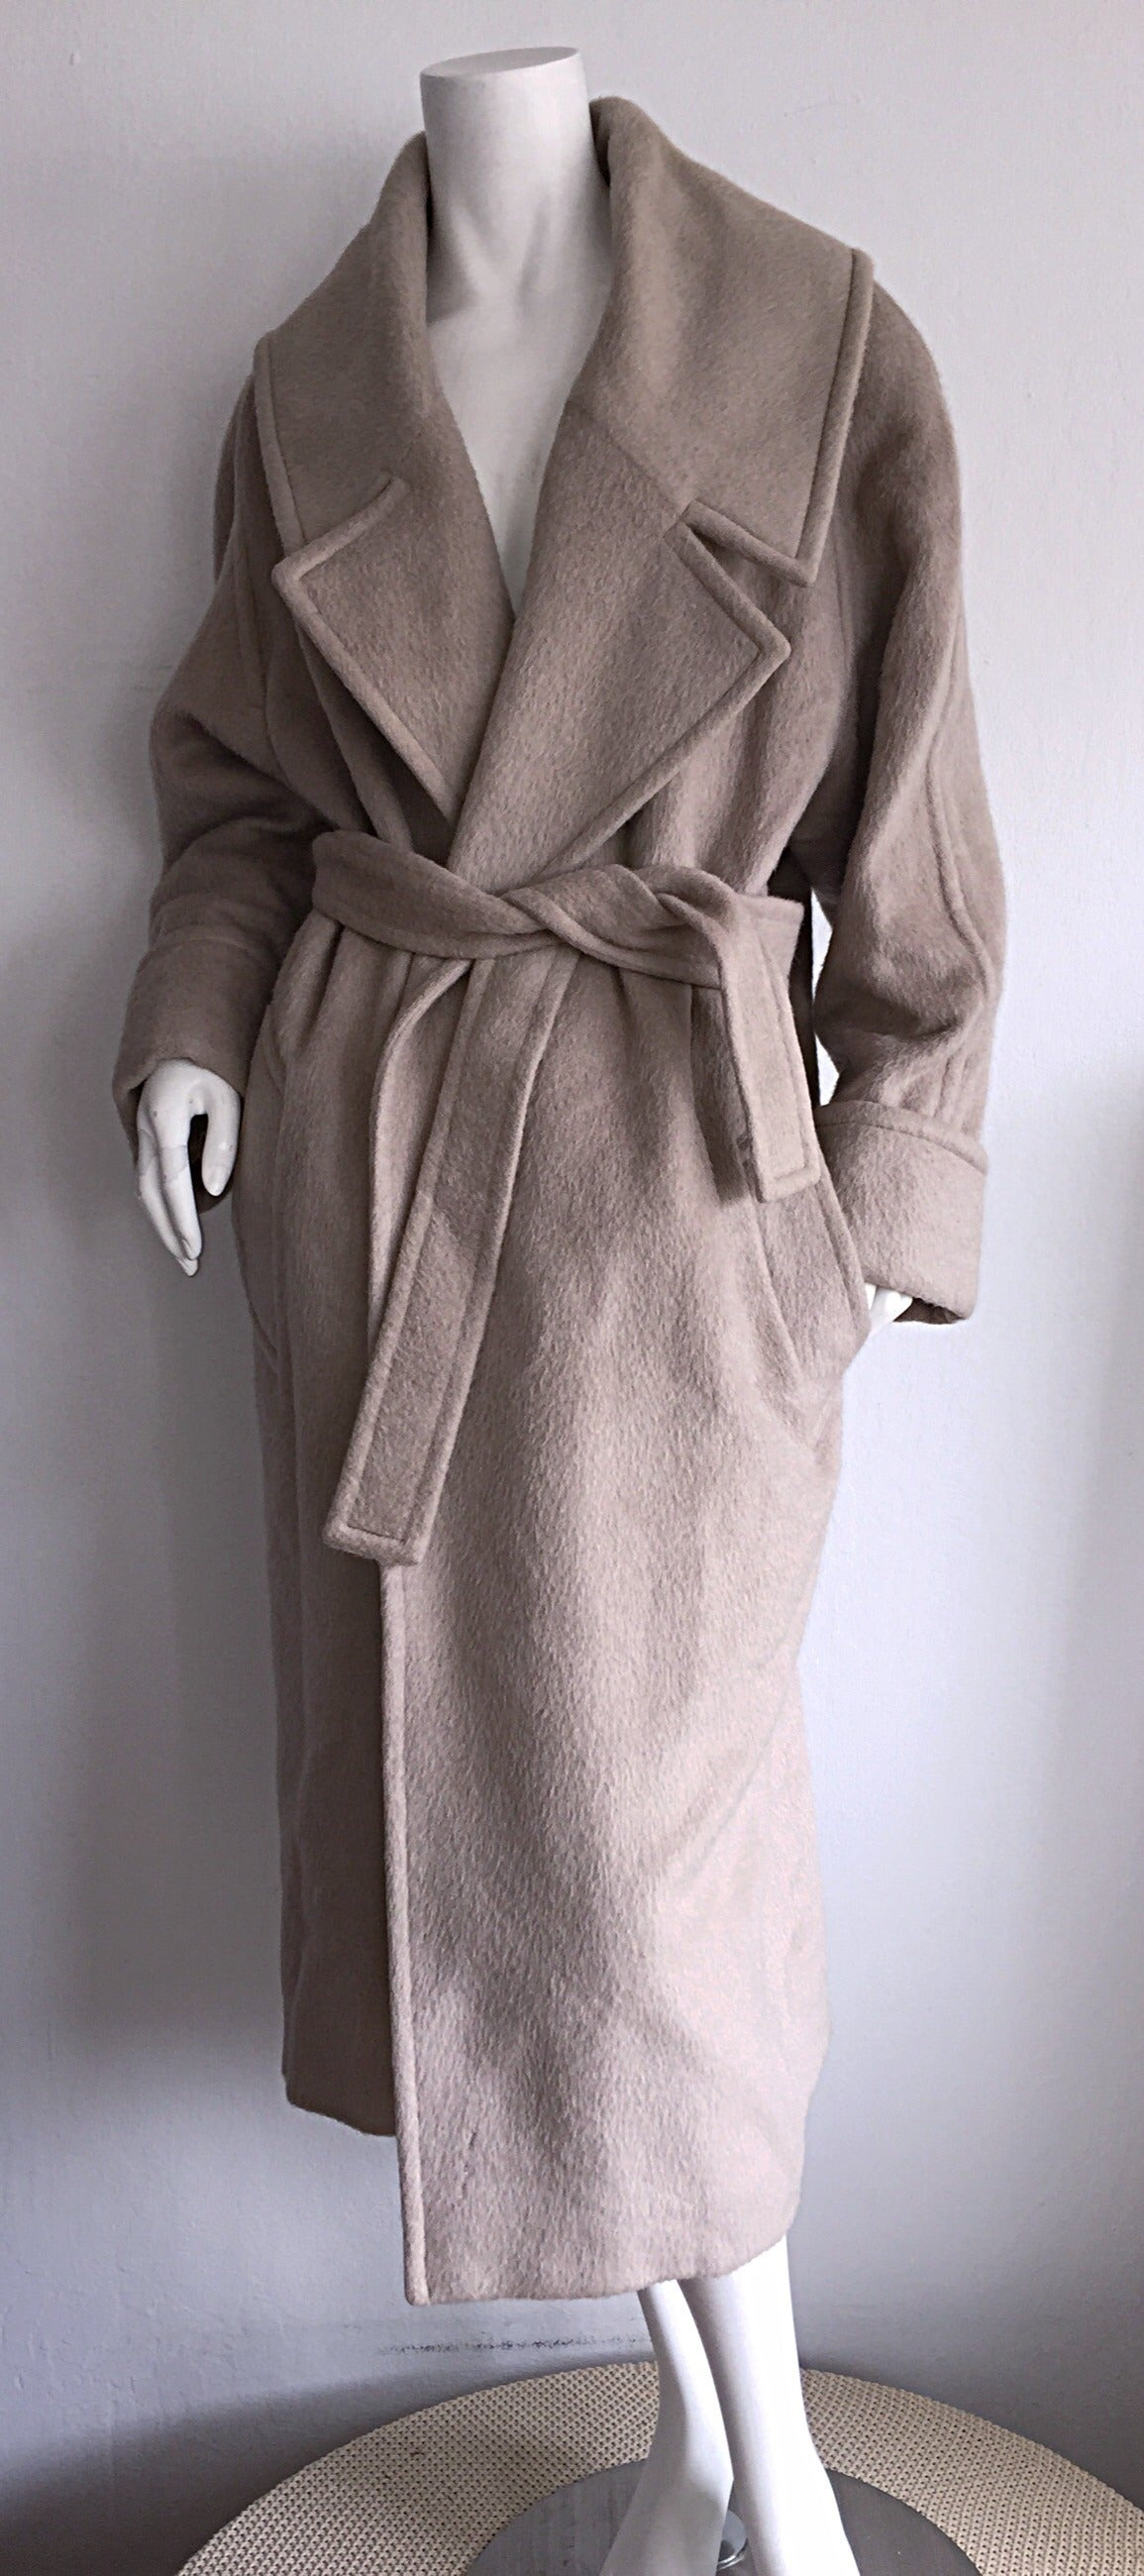 Stylish Vintage Guy Laroche Alpaca + Wool Taupe Wrap Blanket Jacket / Coat For Sale 4